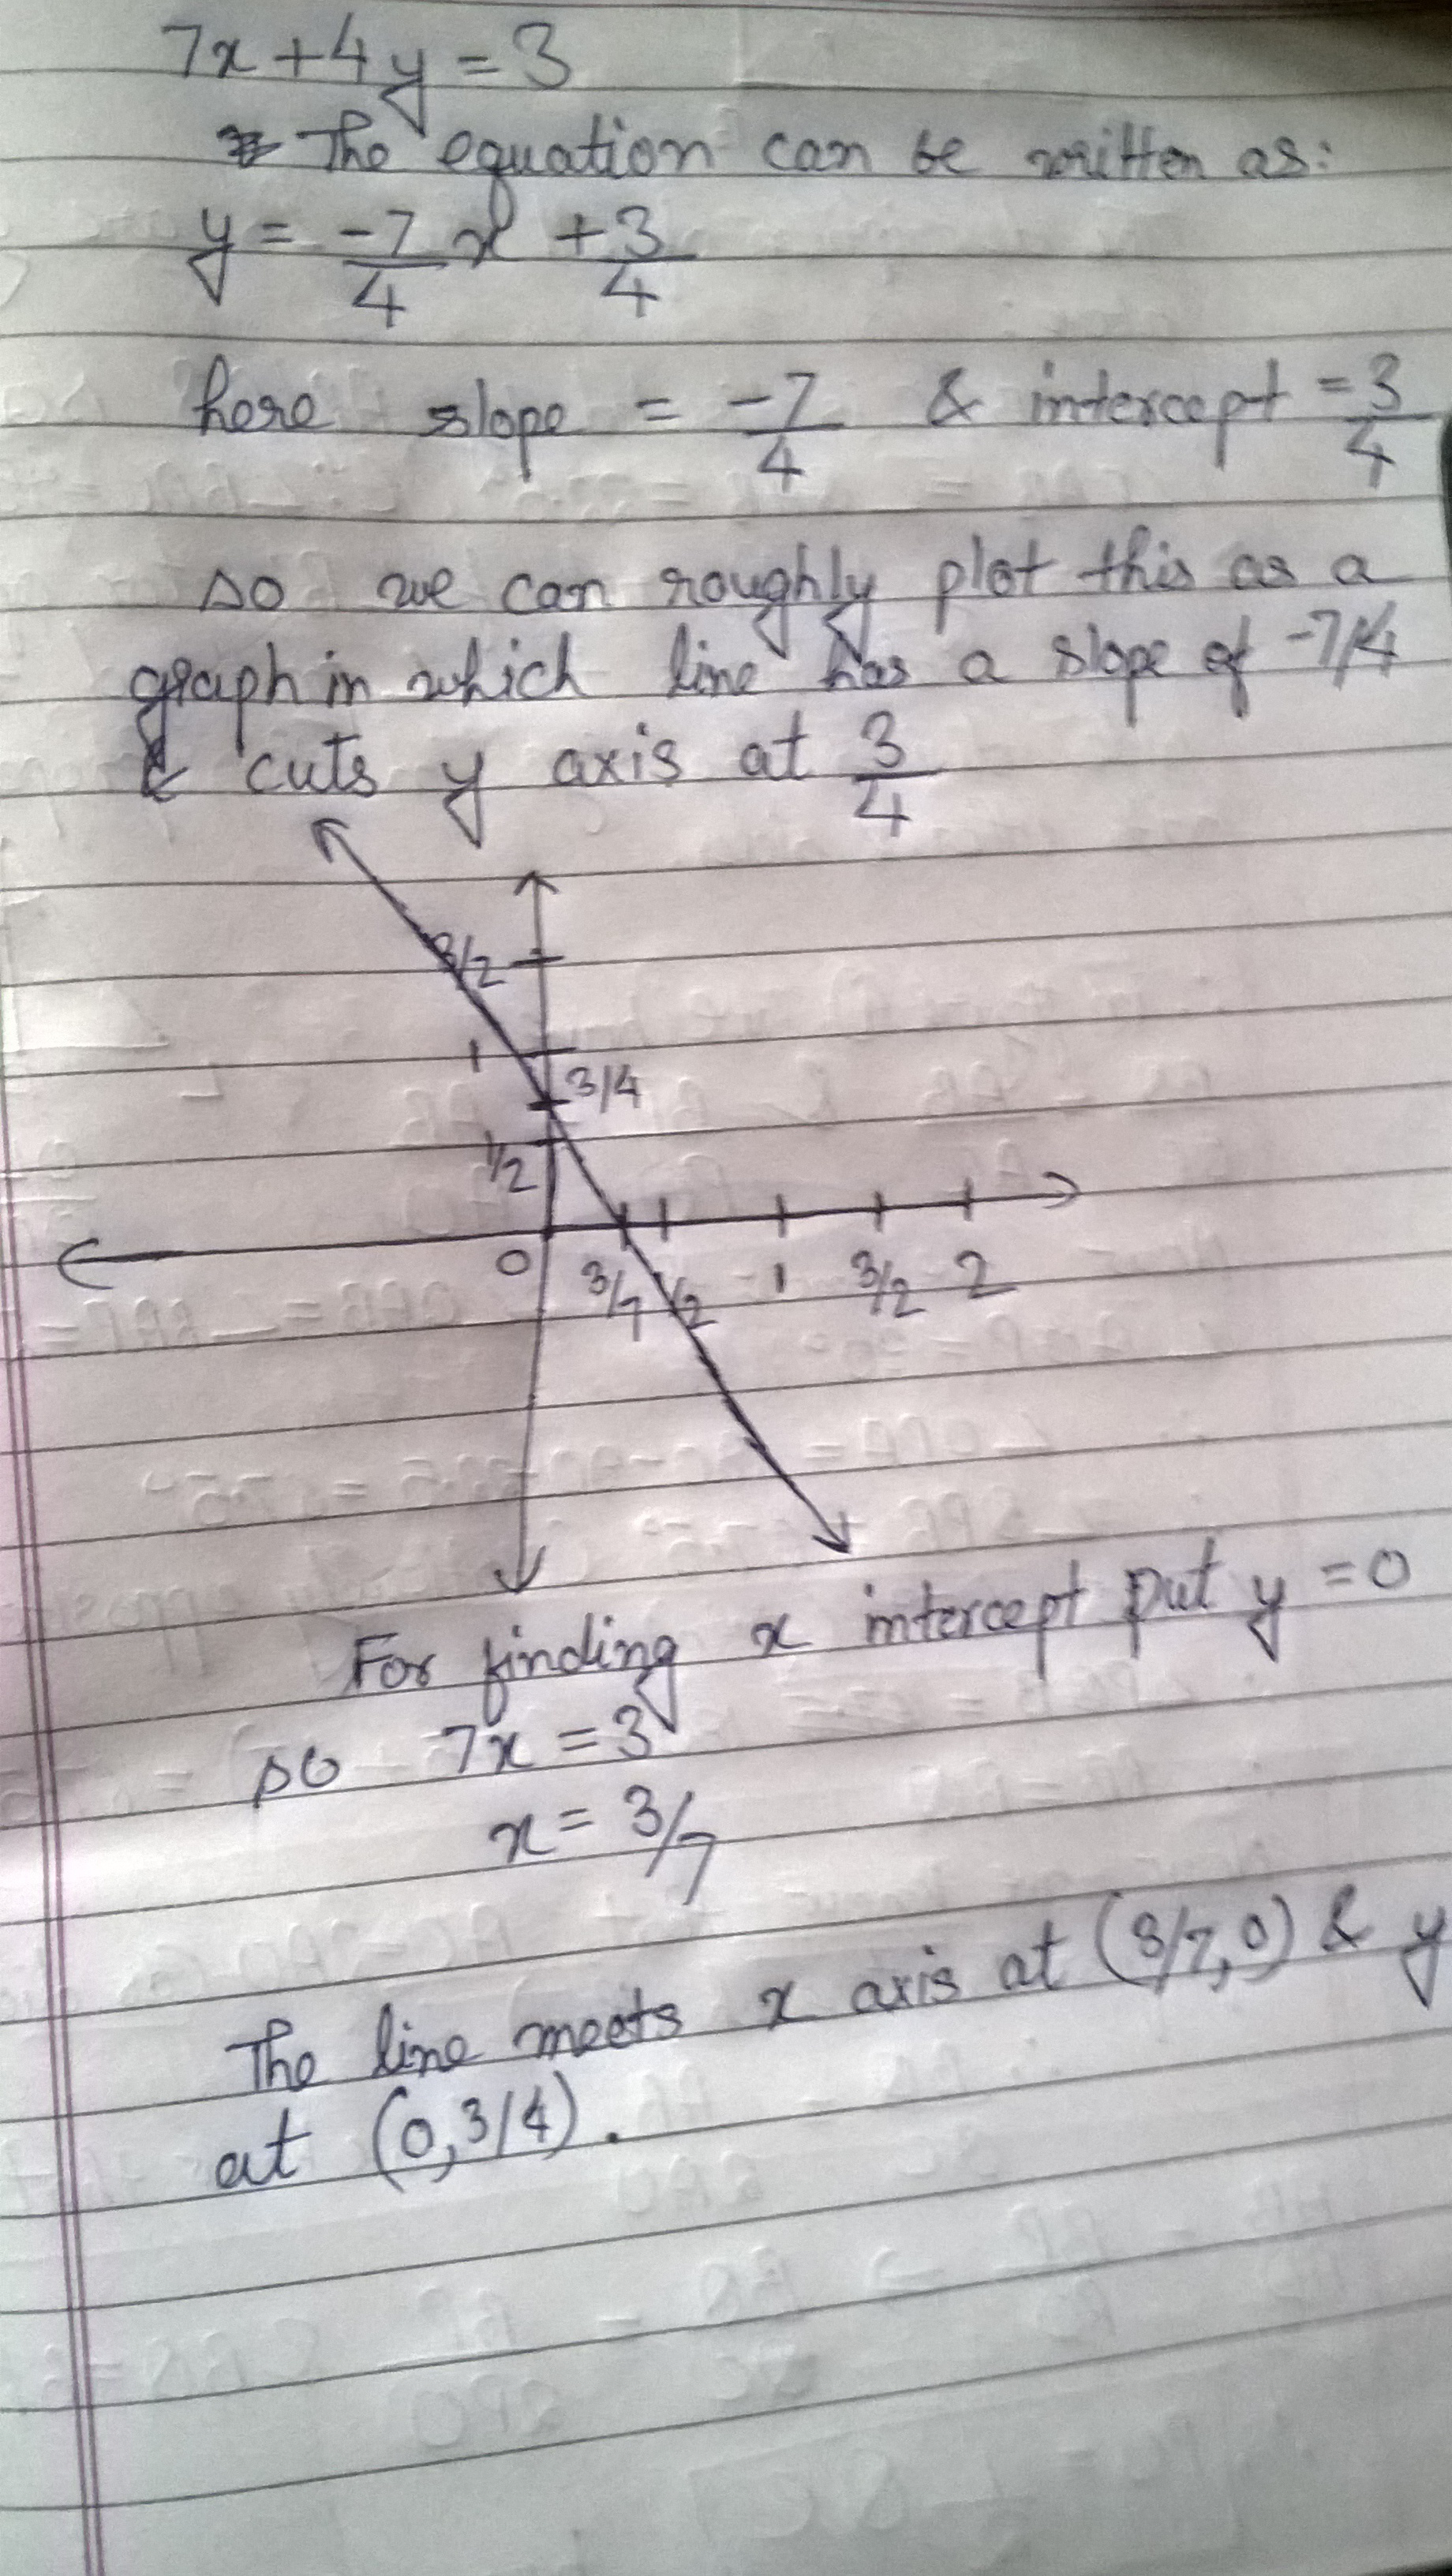 Represent 7x 4y 3 By A Graph Write Coordinate Points Were It Mit X Axis And Y Axises